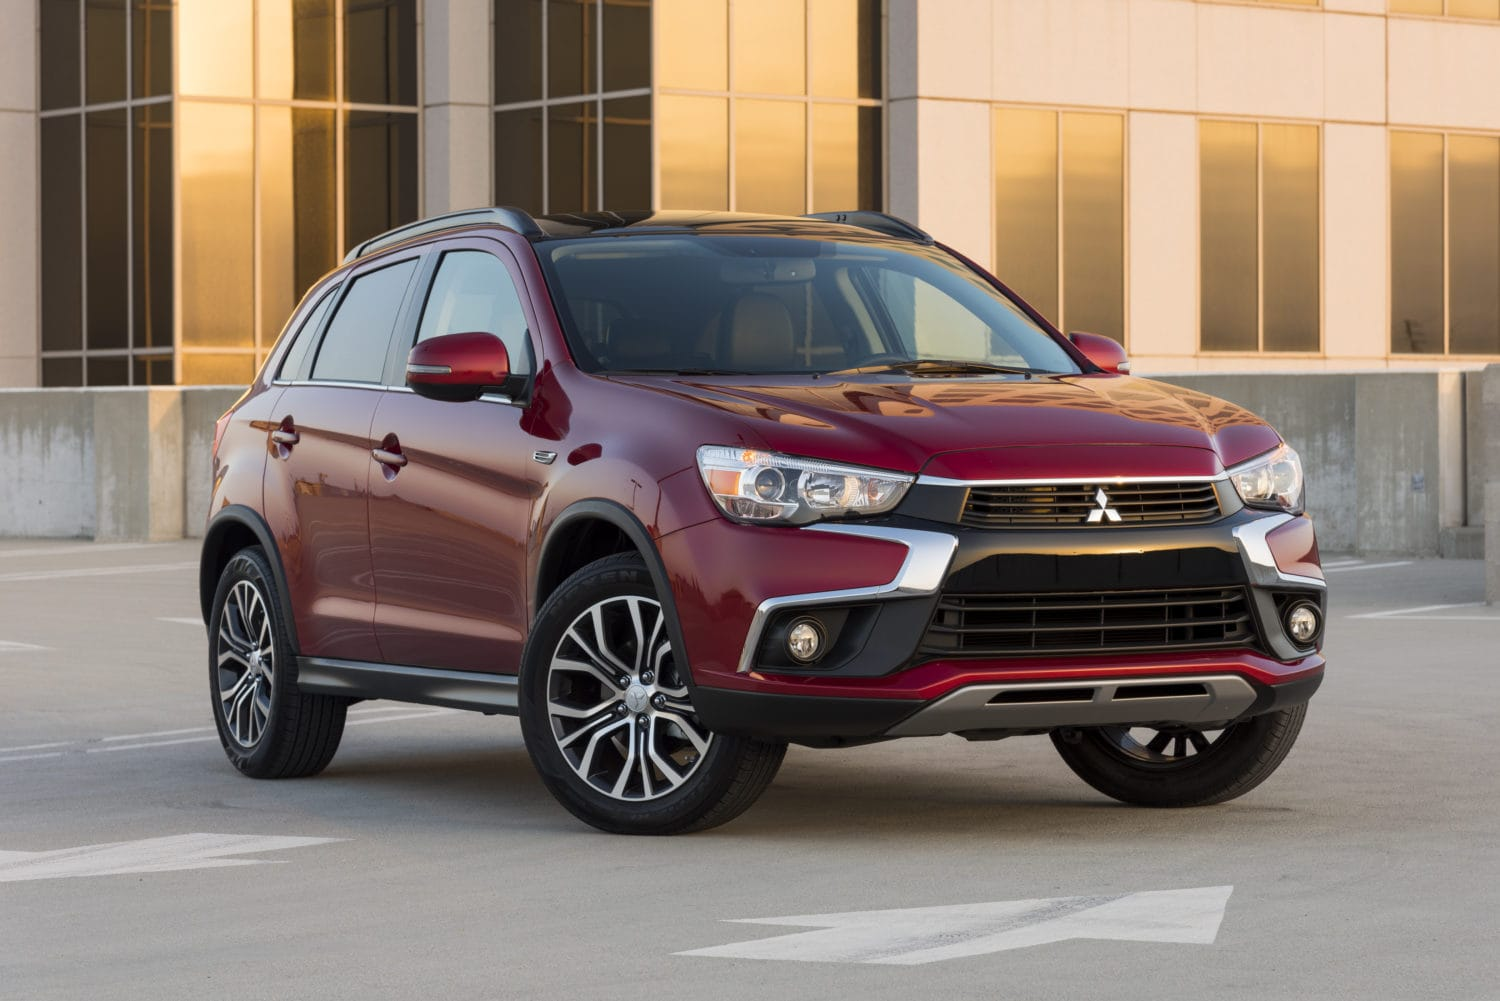 2017 Mitsubishi Outlander Sport GT Is No Mirage - Focus Daily News